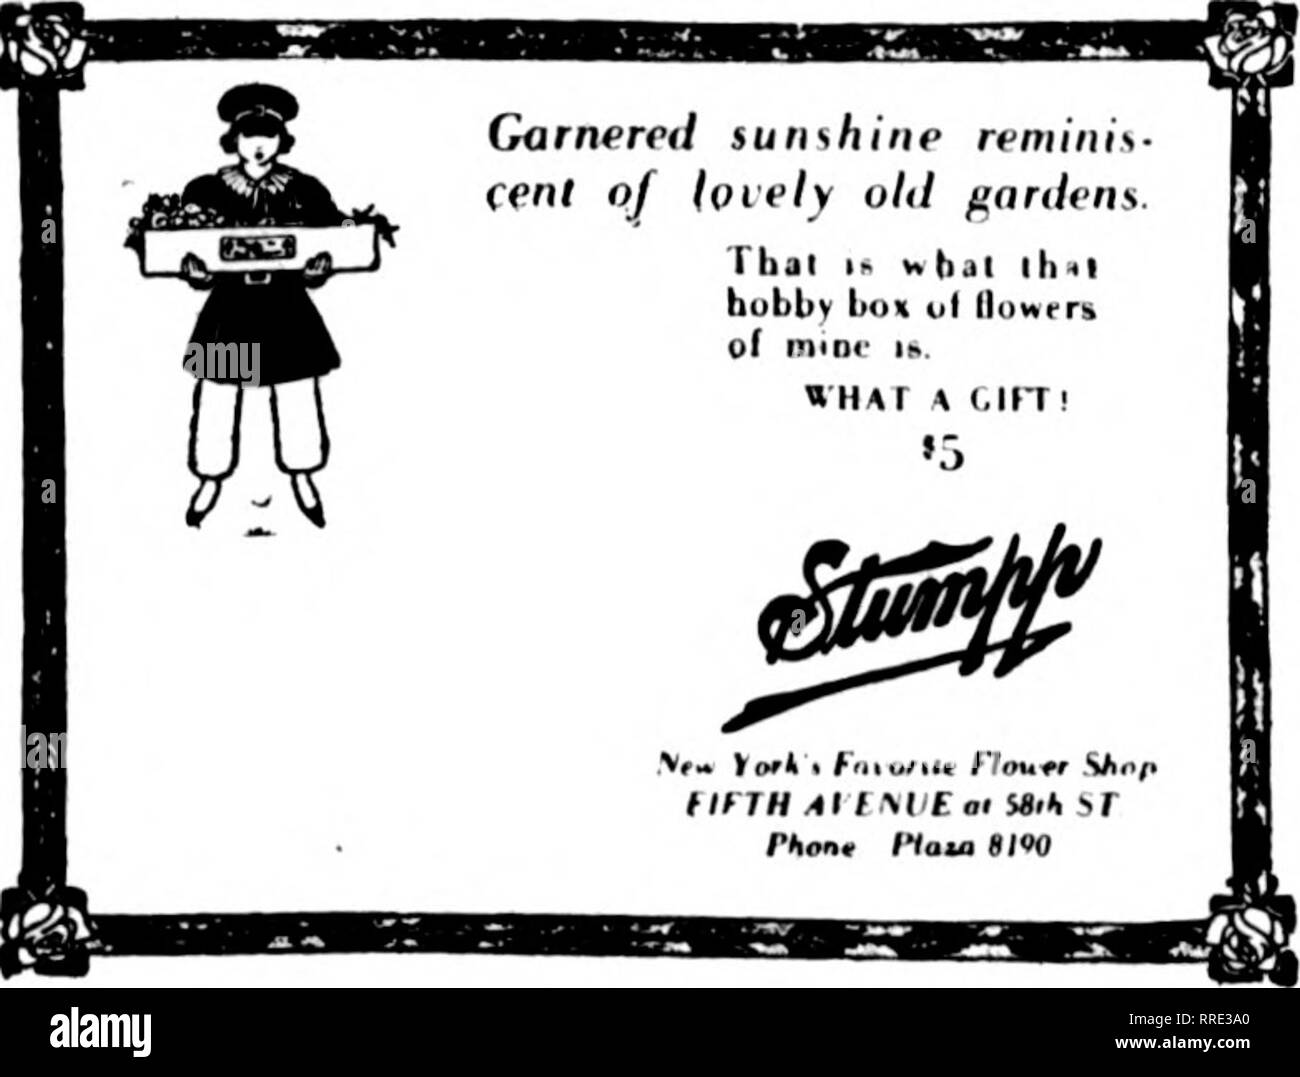 . Florists' review [microform]. Floriculture. Fbbbuaby 24, 1921 The Florists^ Review 7 RETAIL STORE MANAGEMENT WHAT THE LEADERS IN THE TRA.DE ARE DOING THEATER PROGRAM ADS. Stumpp's Specials. Theater program advertising has be- come a thing of as definite money value as newspaper advertising, and its use- fulness is recognized by a number of leading florists in various cities. The Fleischman Floral Co. has carried full- page advertisements in Chicago theater. programs. The Jones-Russell Co., in Cleveland, has found that orchestral concert programs are similiirly valuable. New and distinctive  - Stock Image